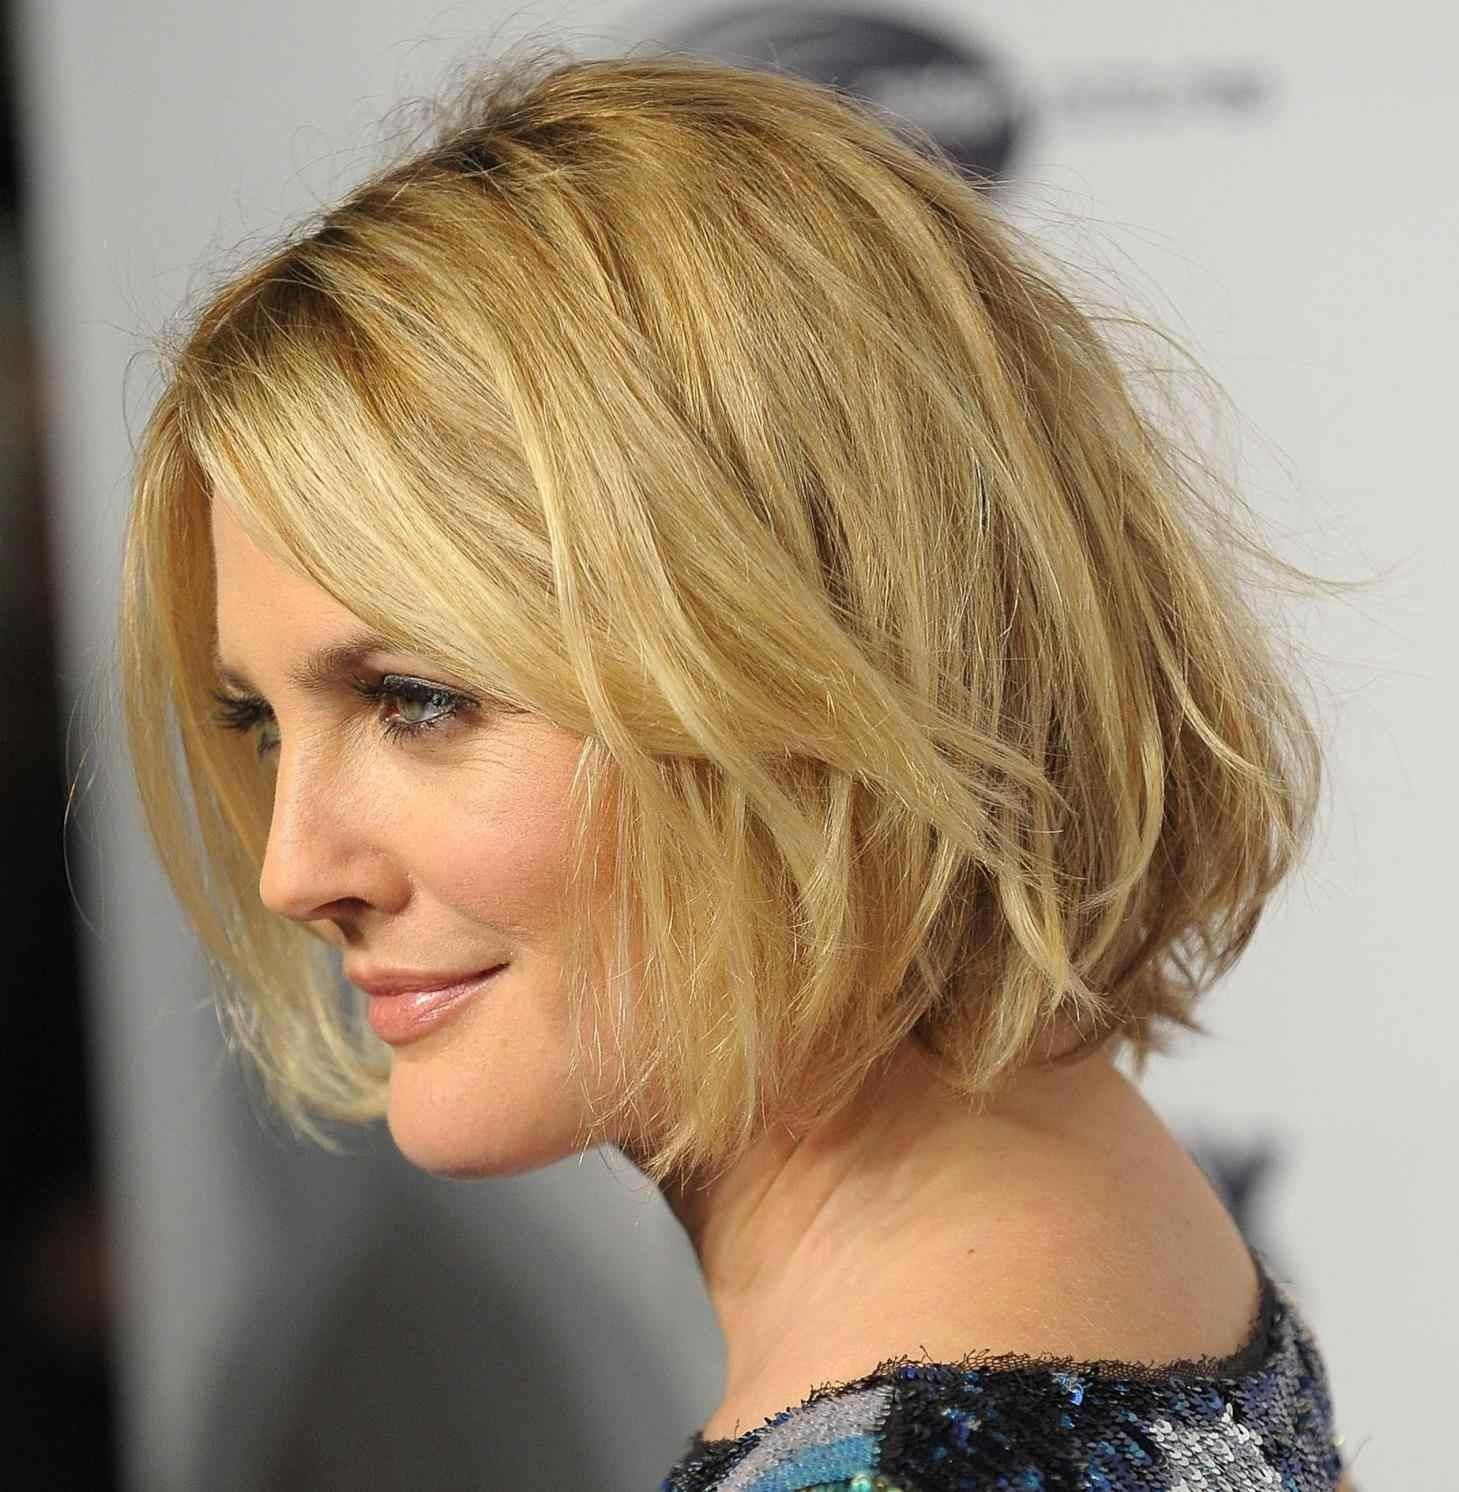 Low Maintenance Haircuts For Straight Hair Delightful Hair Thin Face U Ideas Low In 2020 With Images Messy Bob Hairstyles Haircut For Thick Hair Haircuts For Fine Hair